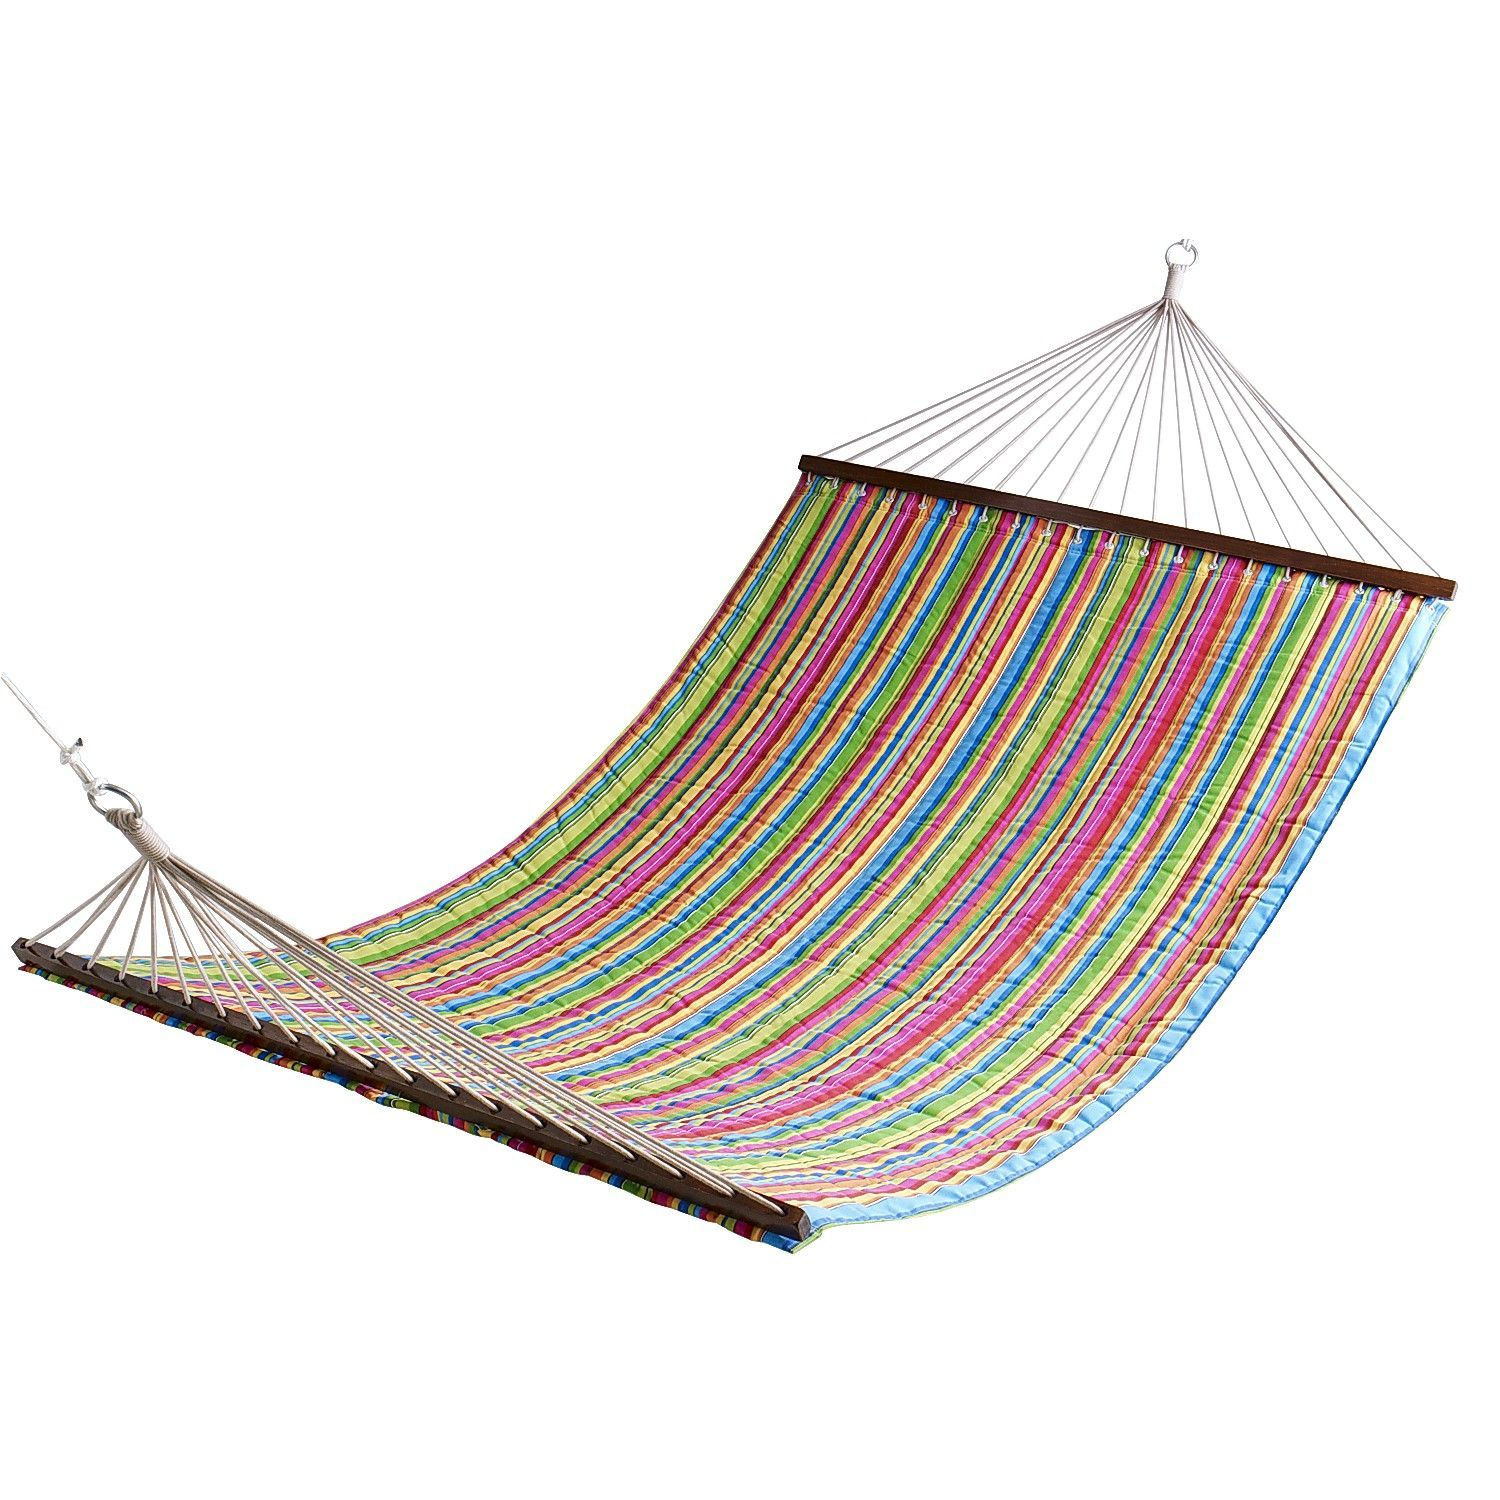 buy garden stand pin saving steel with case hammock includes double shipping at free portable carrying space